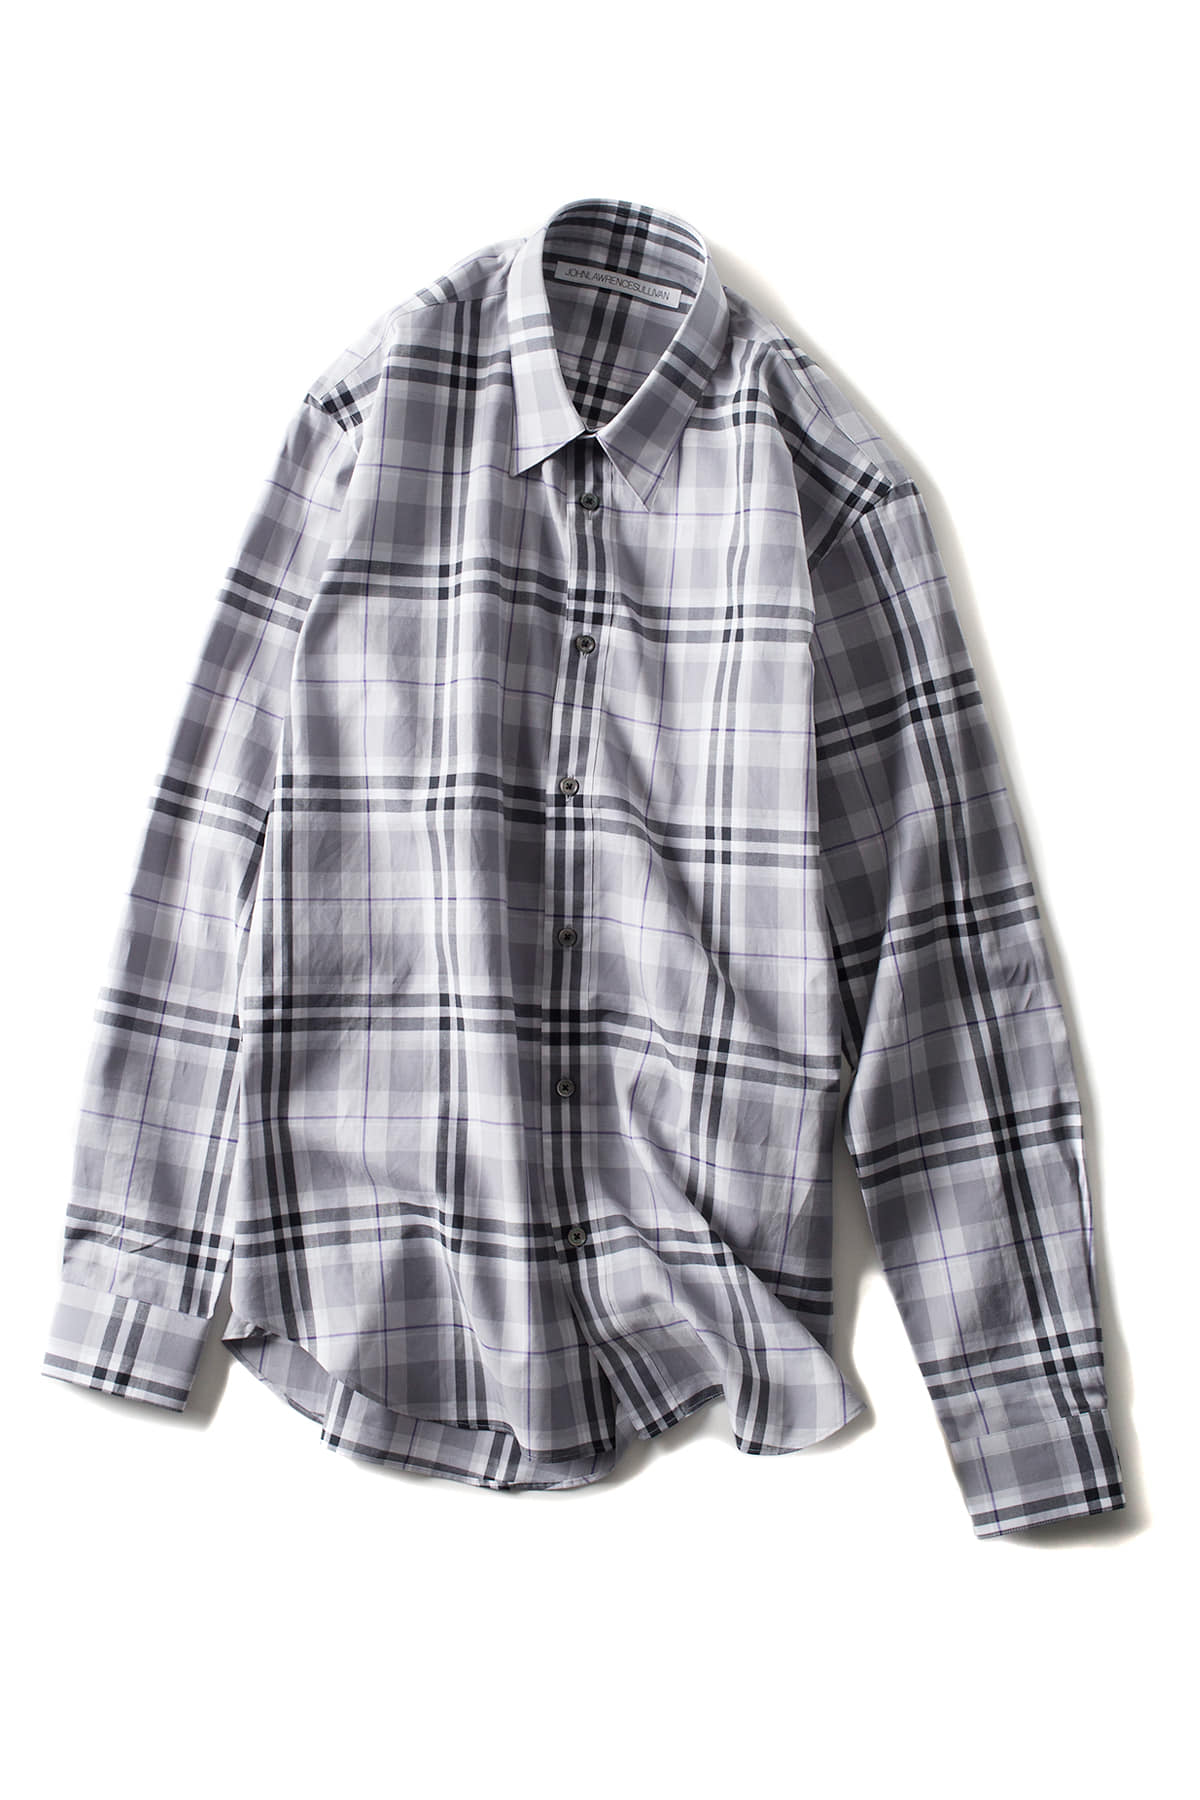 JOHN LAWRENCE SULLIVAN : Check Shirt (Grey)